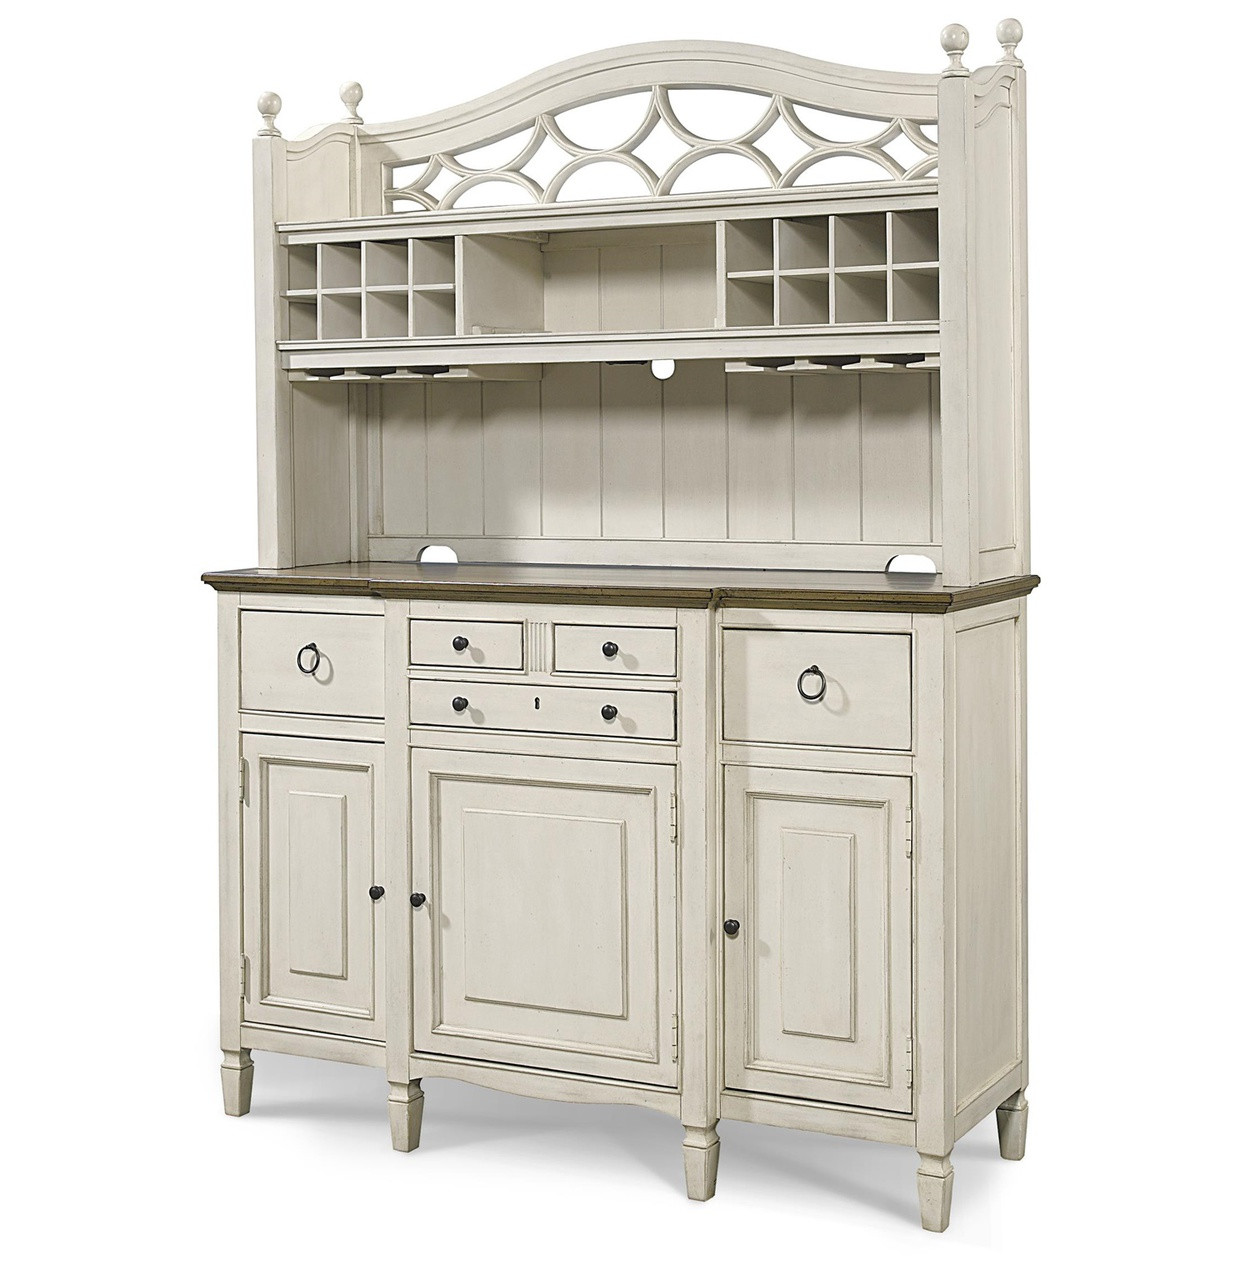 Country Kitchen Hutches: Country-Chic Maple Wood White Kitchen Buffet With Bar